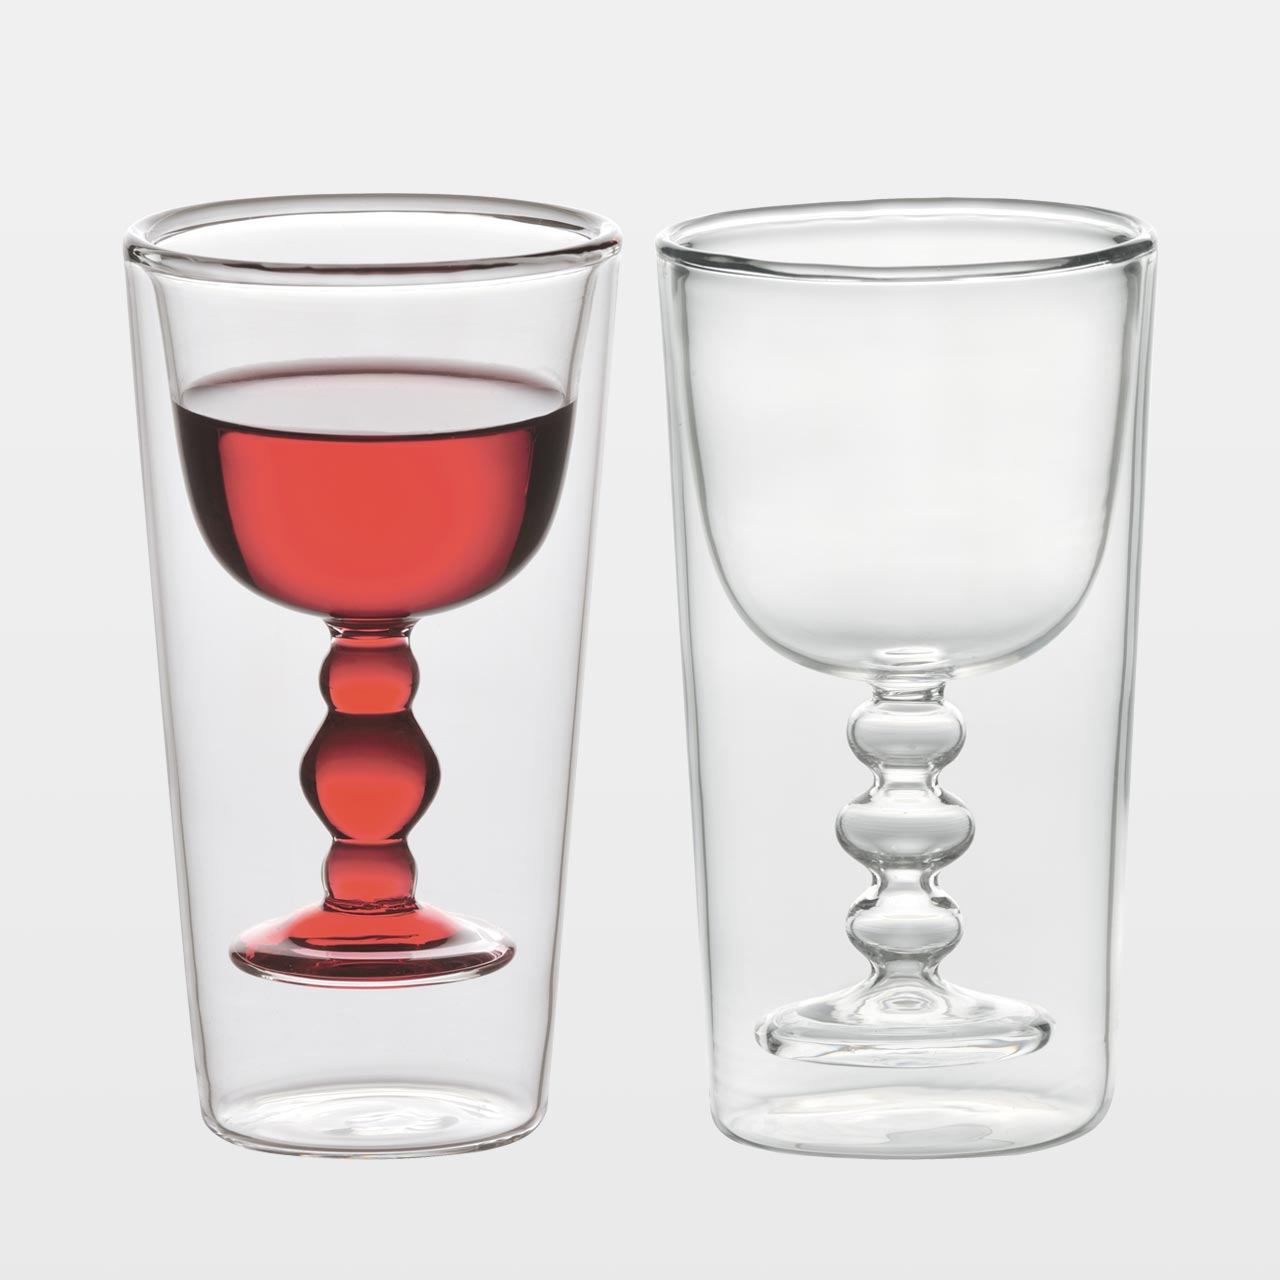 Bitossi Home, glasses Cocktail - Acqua e Vino